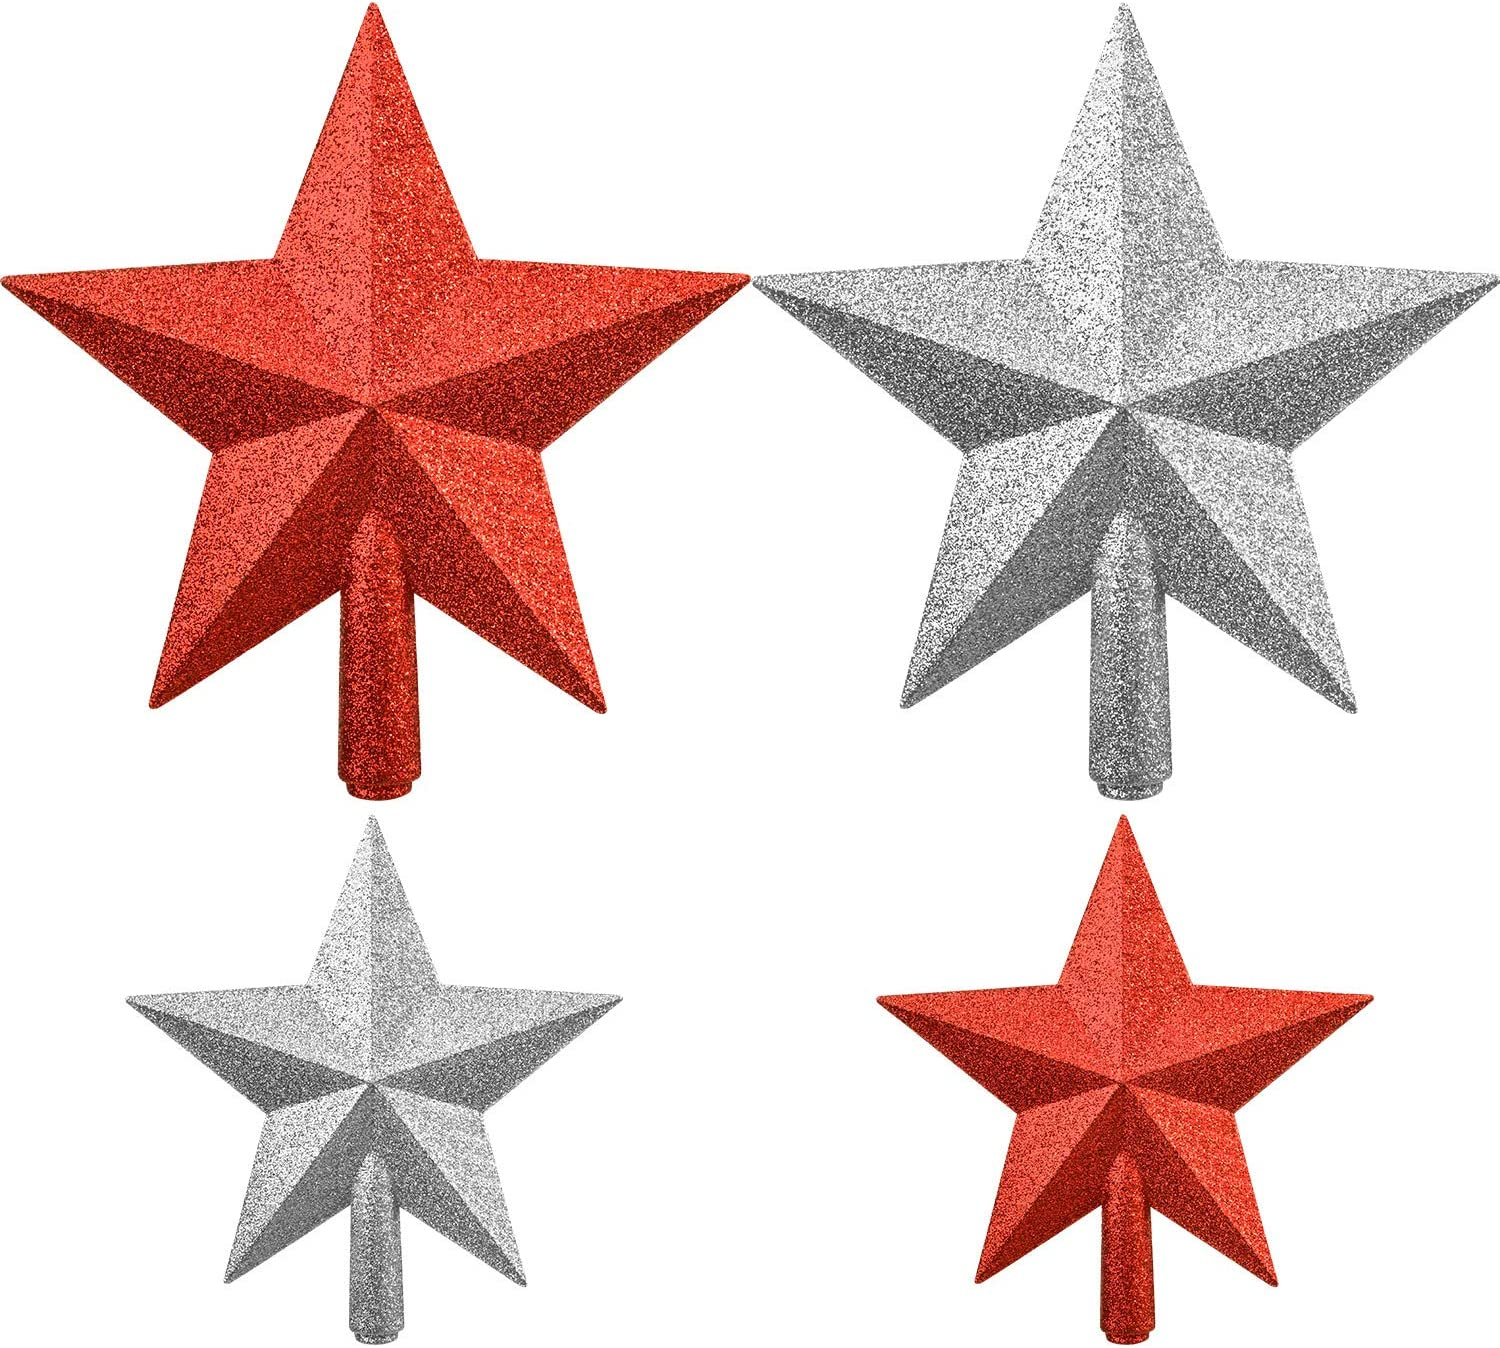 Boao 4 Pieces Glitter Star Tree Topper Christmas Tree Toppers Decorations for Xmas Tree Decoration, 2 Sizes (Red and Silver)